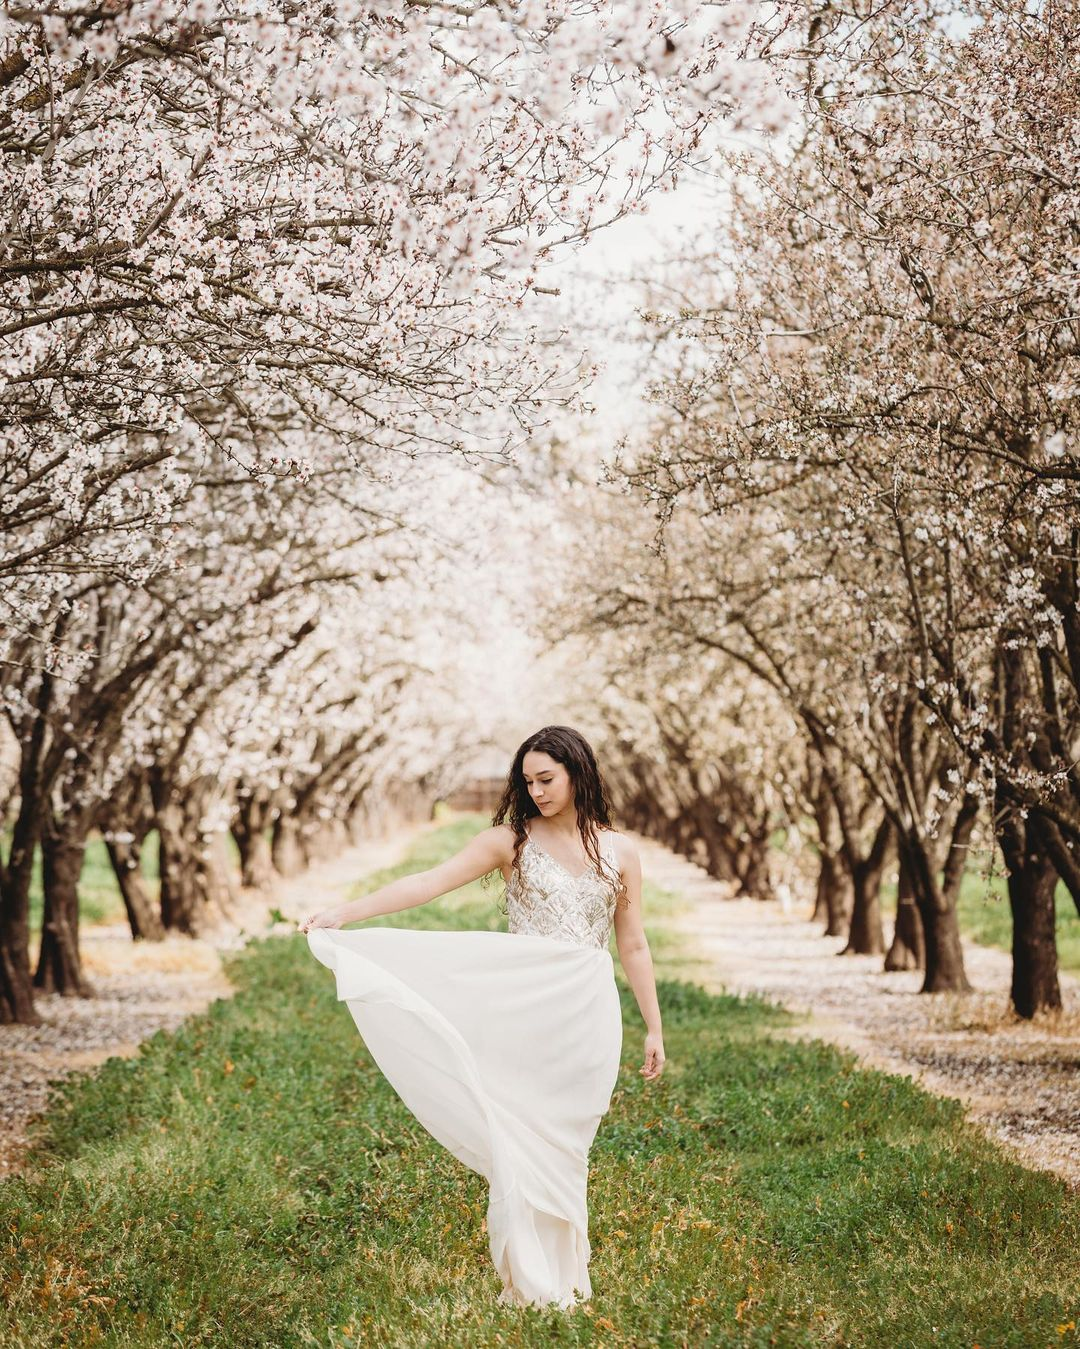 A bride posing while swaying her dress in a pathway outlined by cherry blossom trees